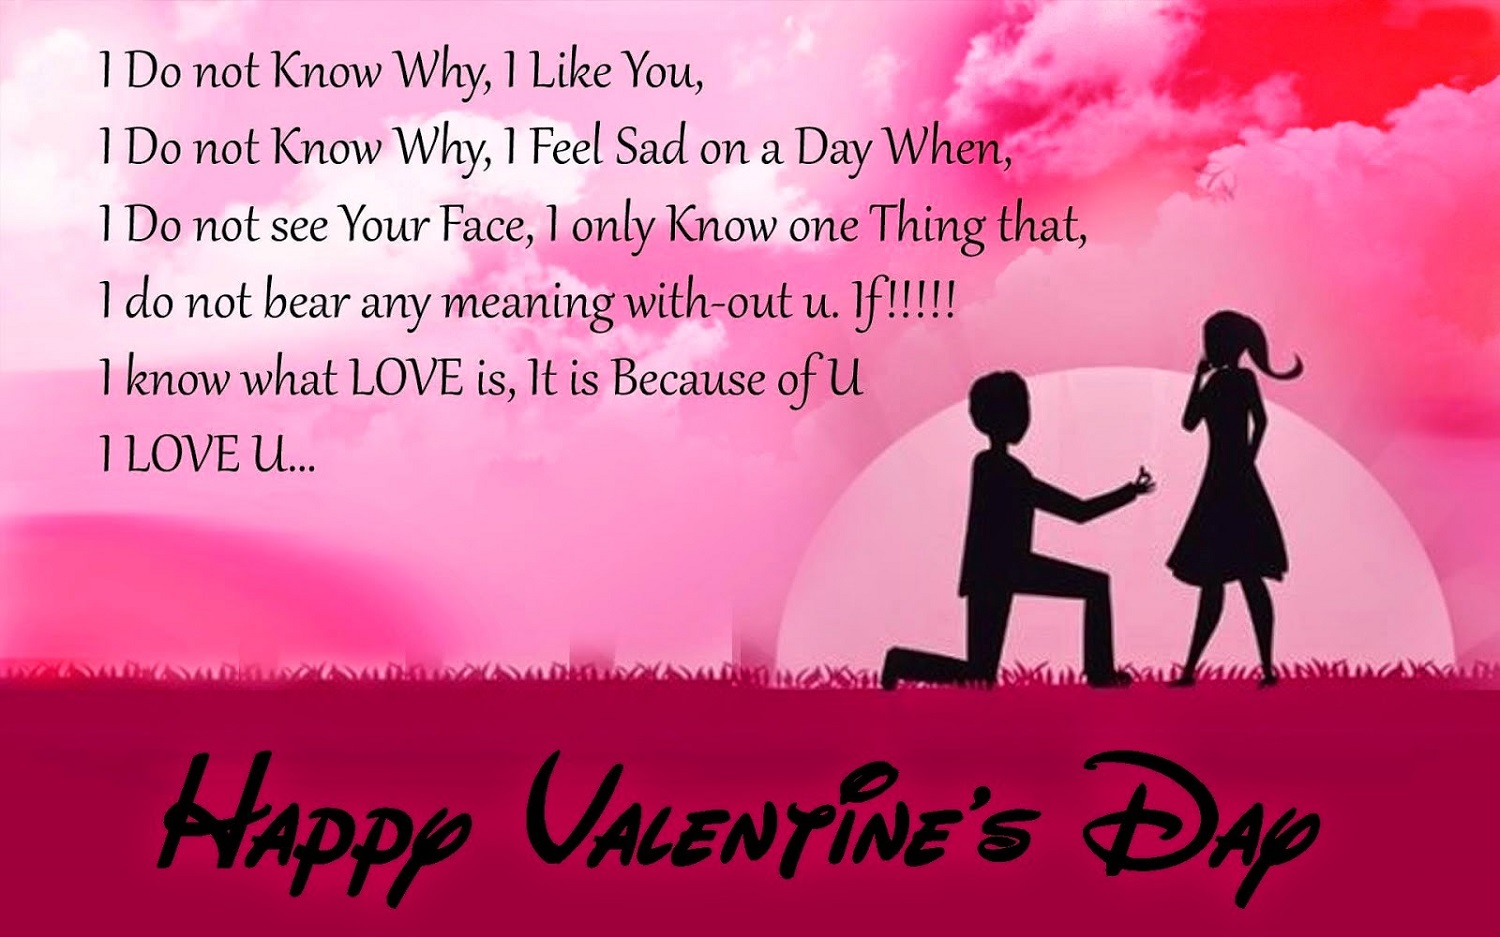 Valentines Day Quotes For Boyfriend Best New 40 Happy Valentines Day 2018 Wishes For Wife  Happy